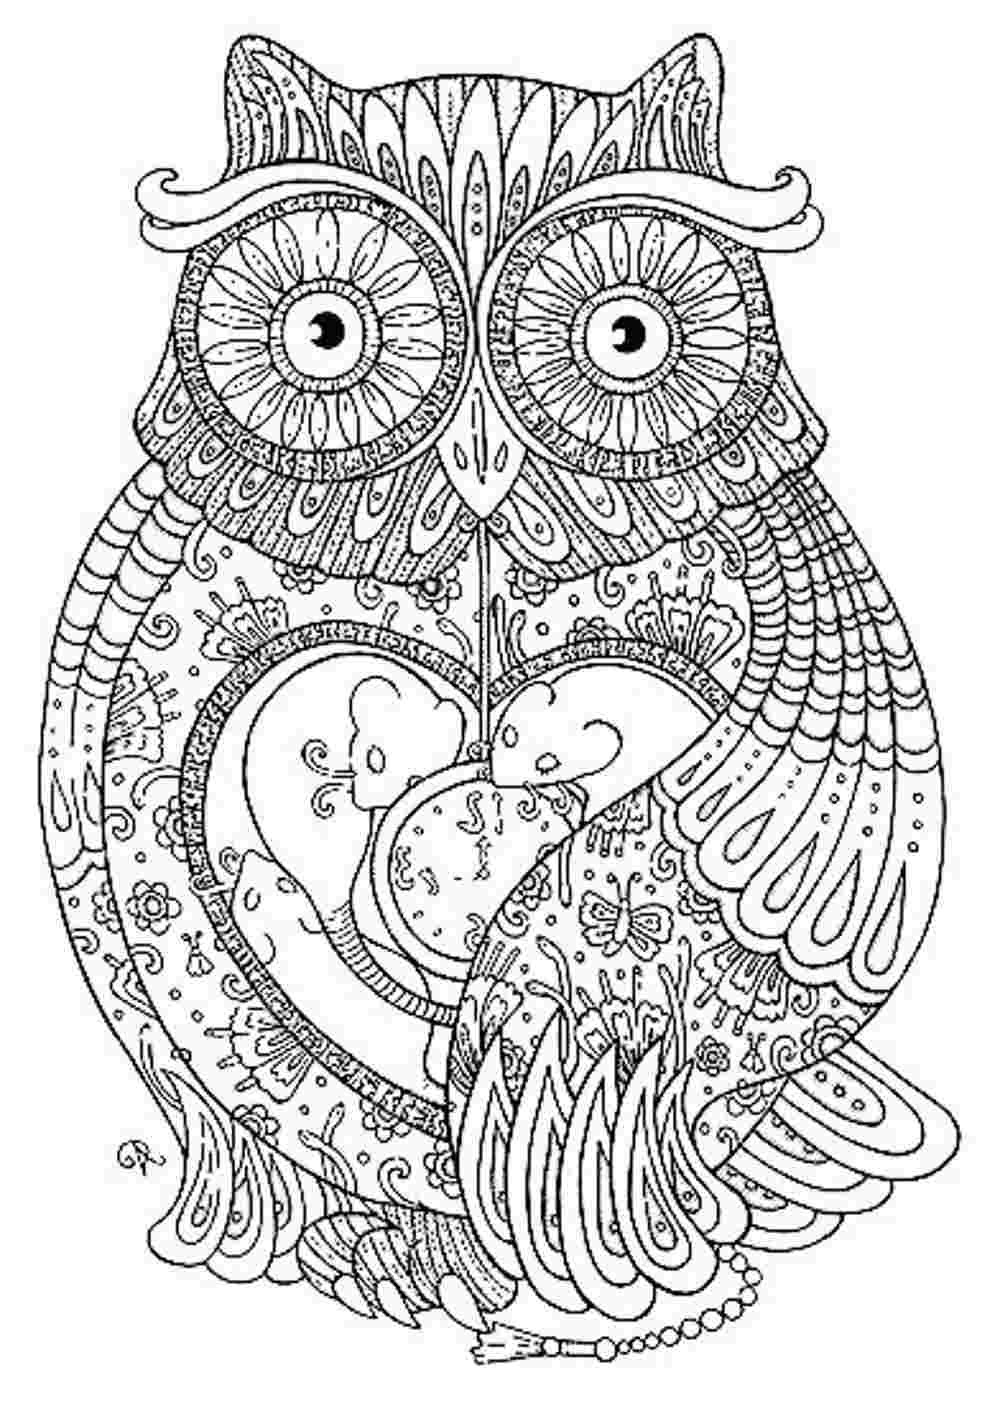 Best ideas about Adult Coloring Books . Save or Pin Free Printable Coloring Book Pages Best Adult Coloring Now.